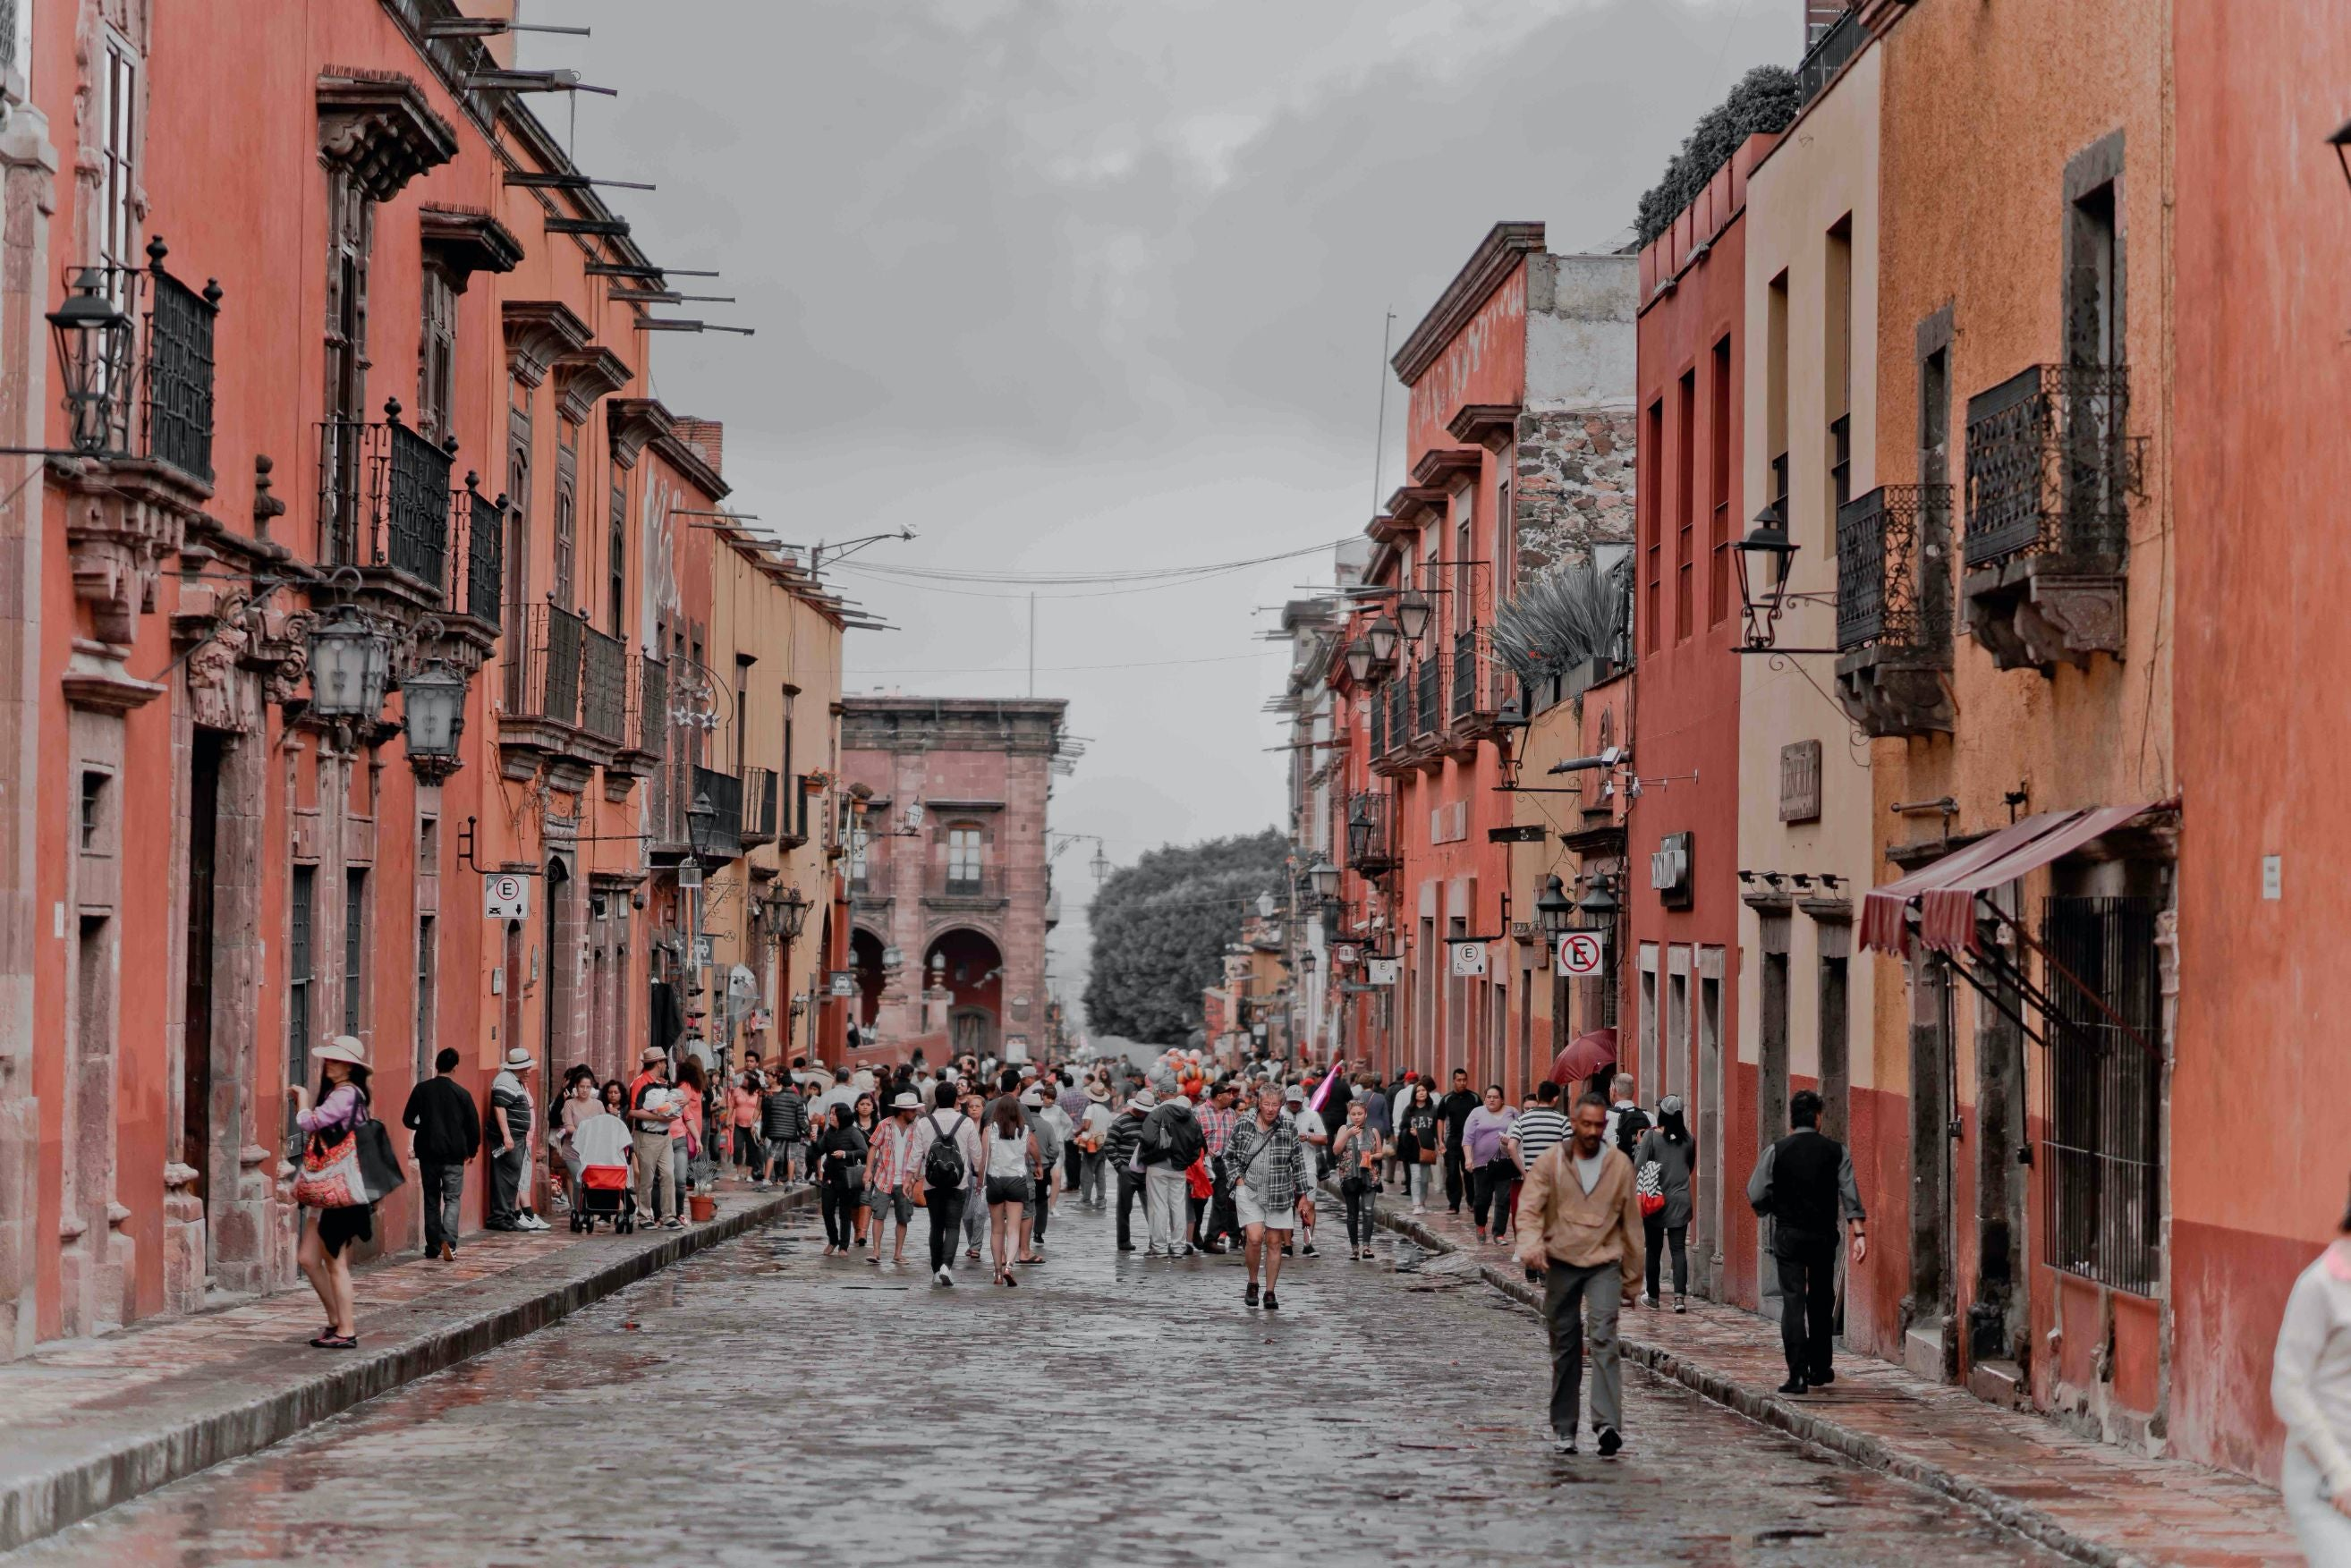 VSA San Miguel With people walking in the street